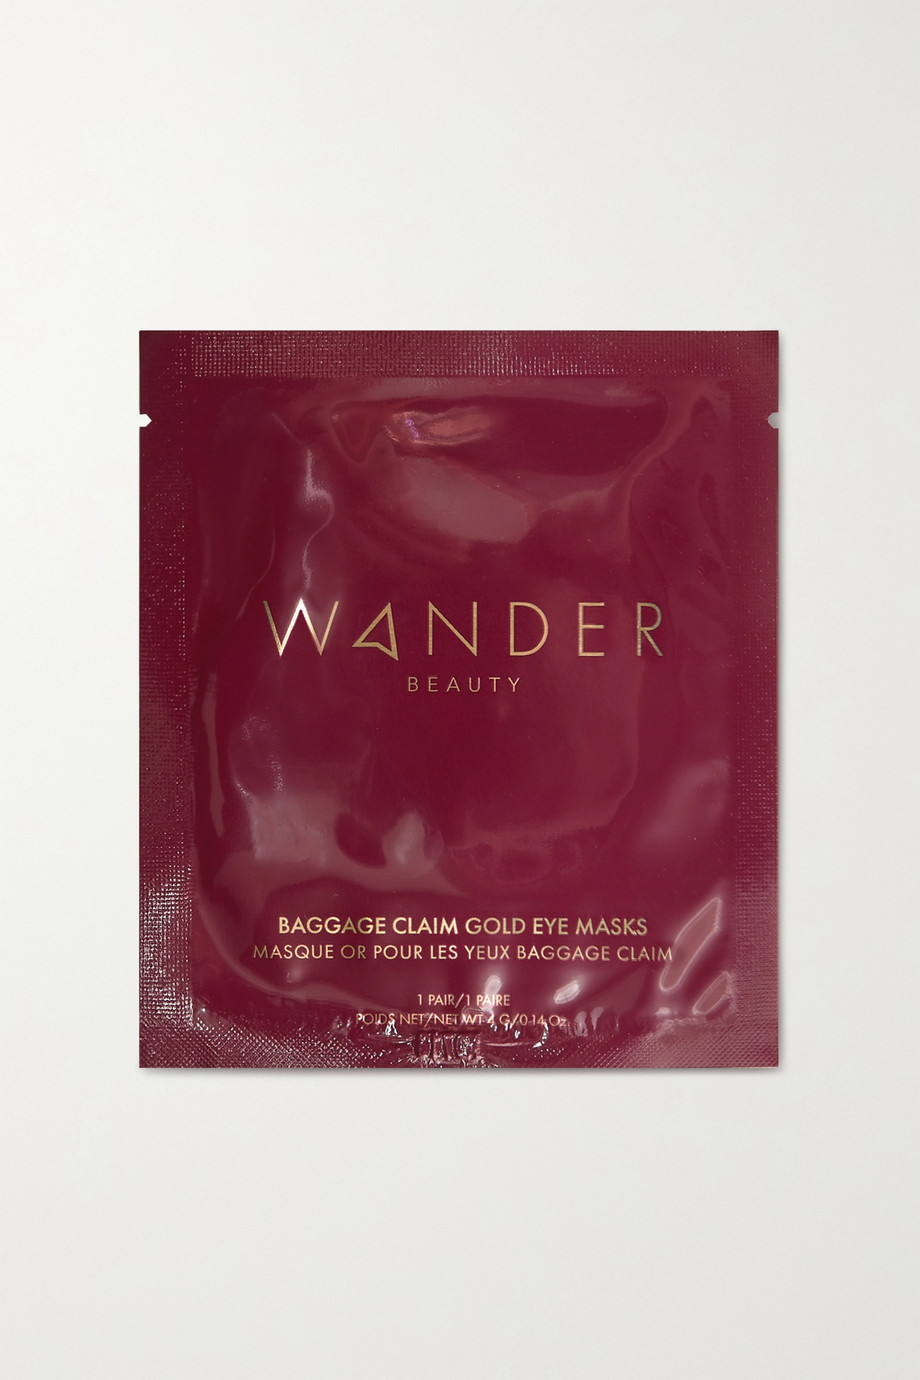 Wander Beauty Baggage Claim Upgrade Gold Eye Masks – 18 Augenmasken